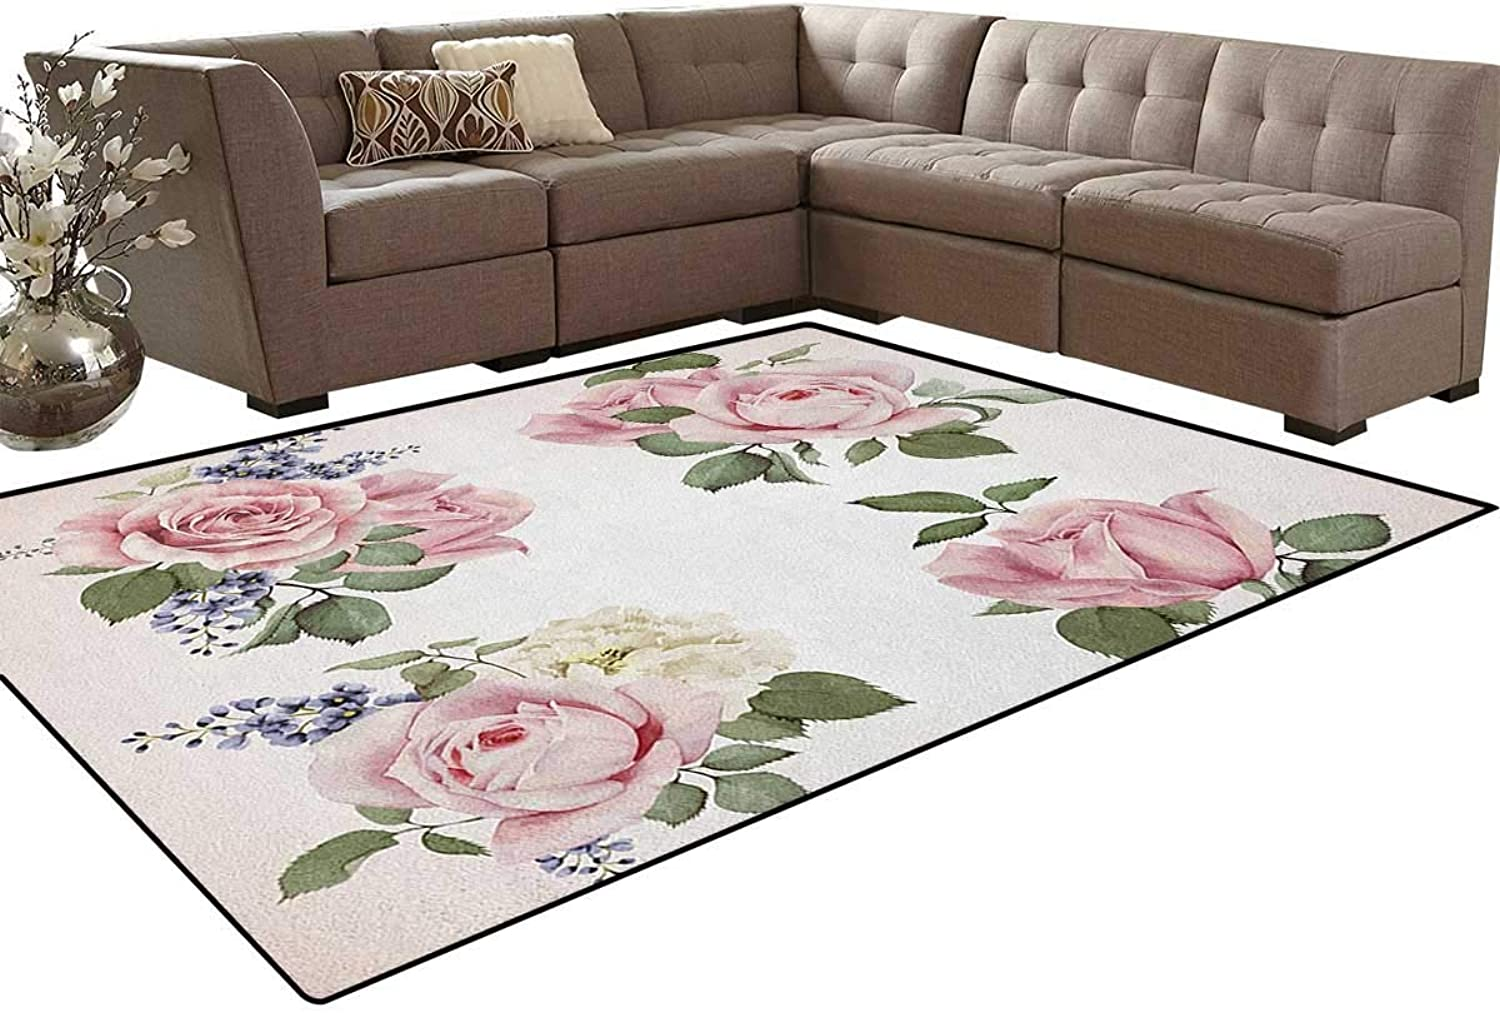 Springtime Set of Bouquets of pinks Bridal Flora Corsage Gentle Nature Floor Mat Rug Indoor Front Door Kitchen and Living Room Bedroom Mats Rubber Non Slip